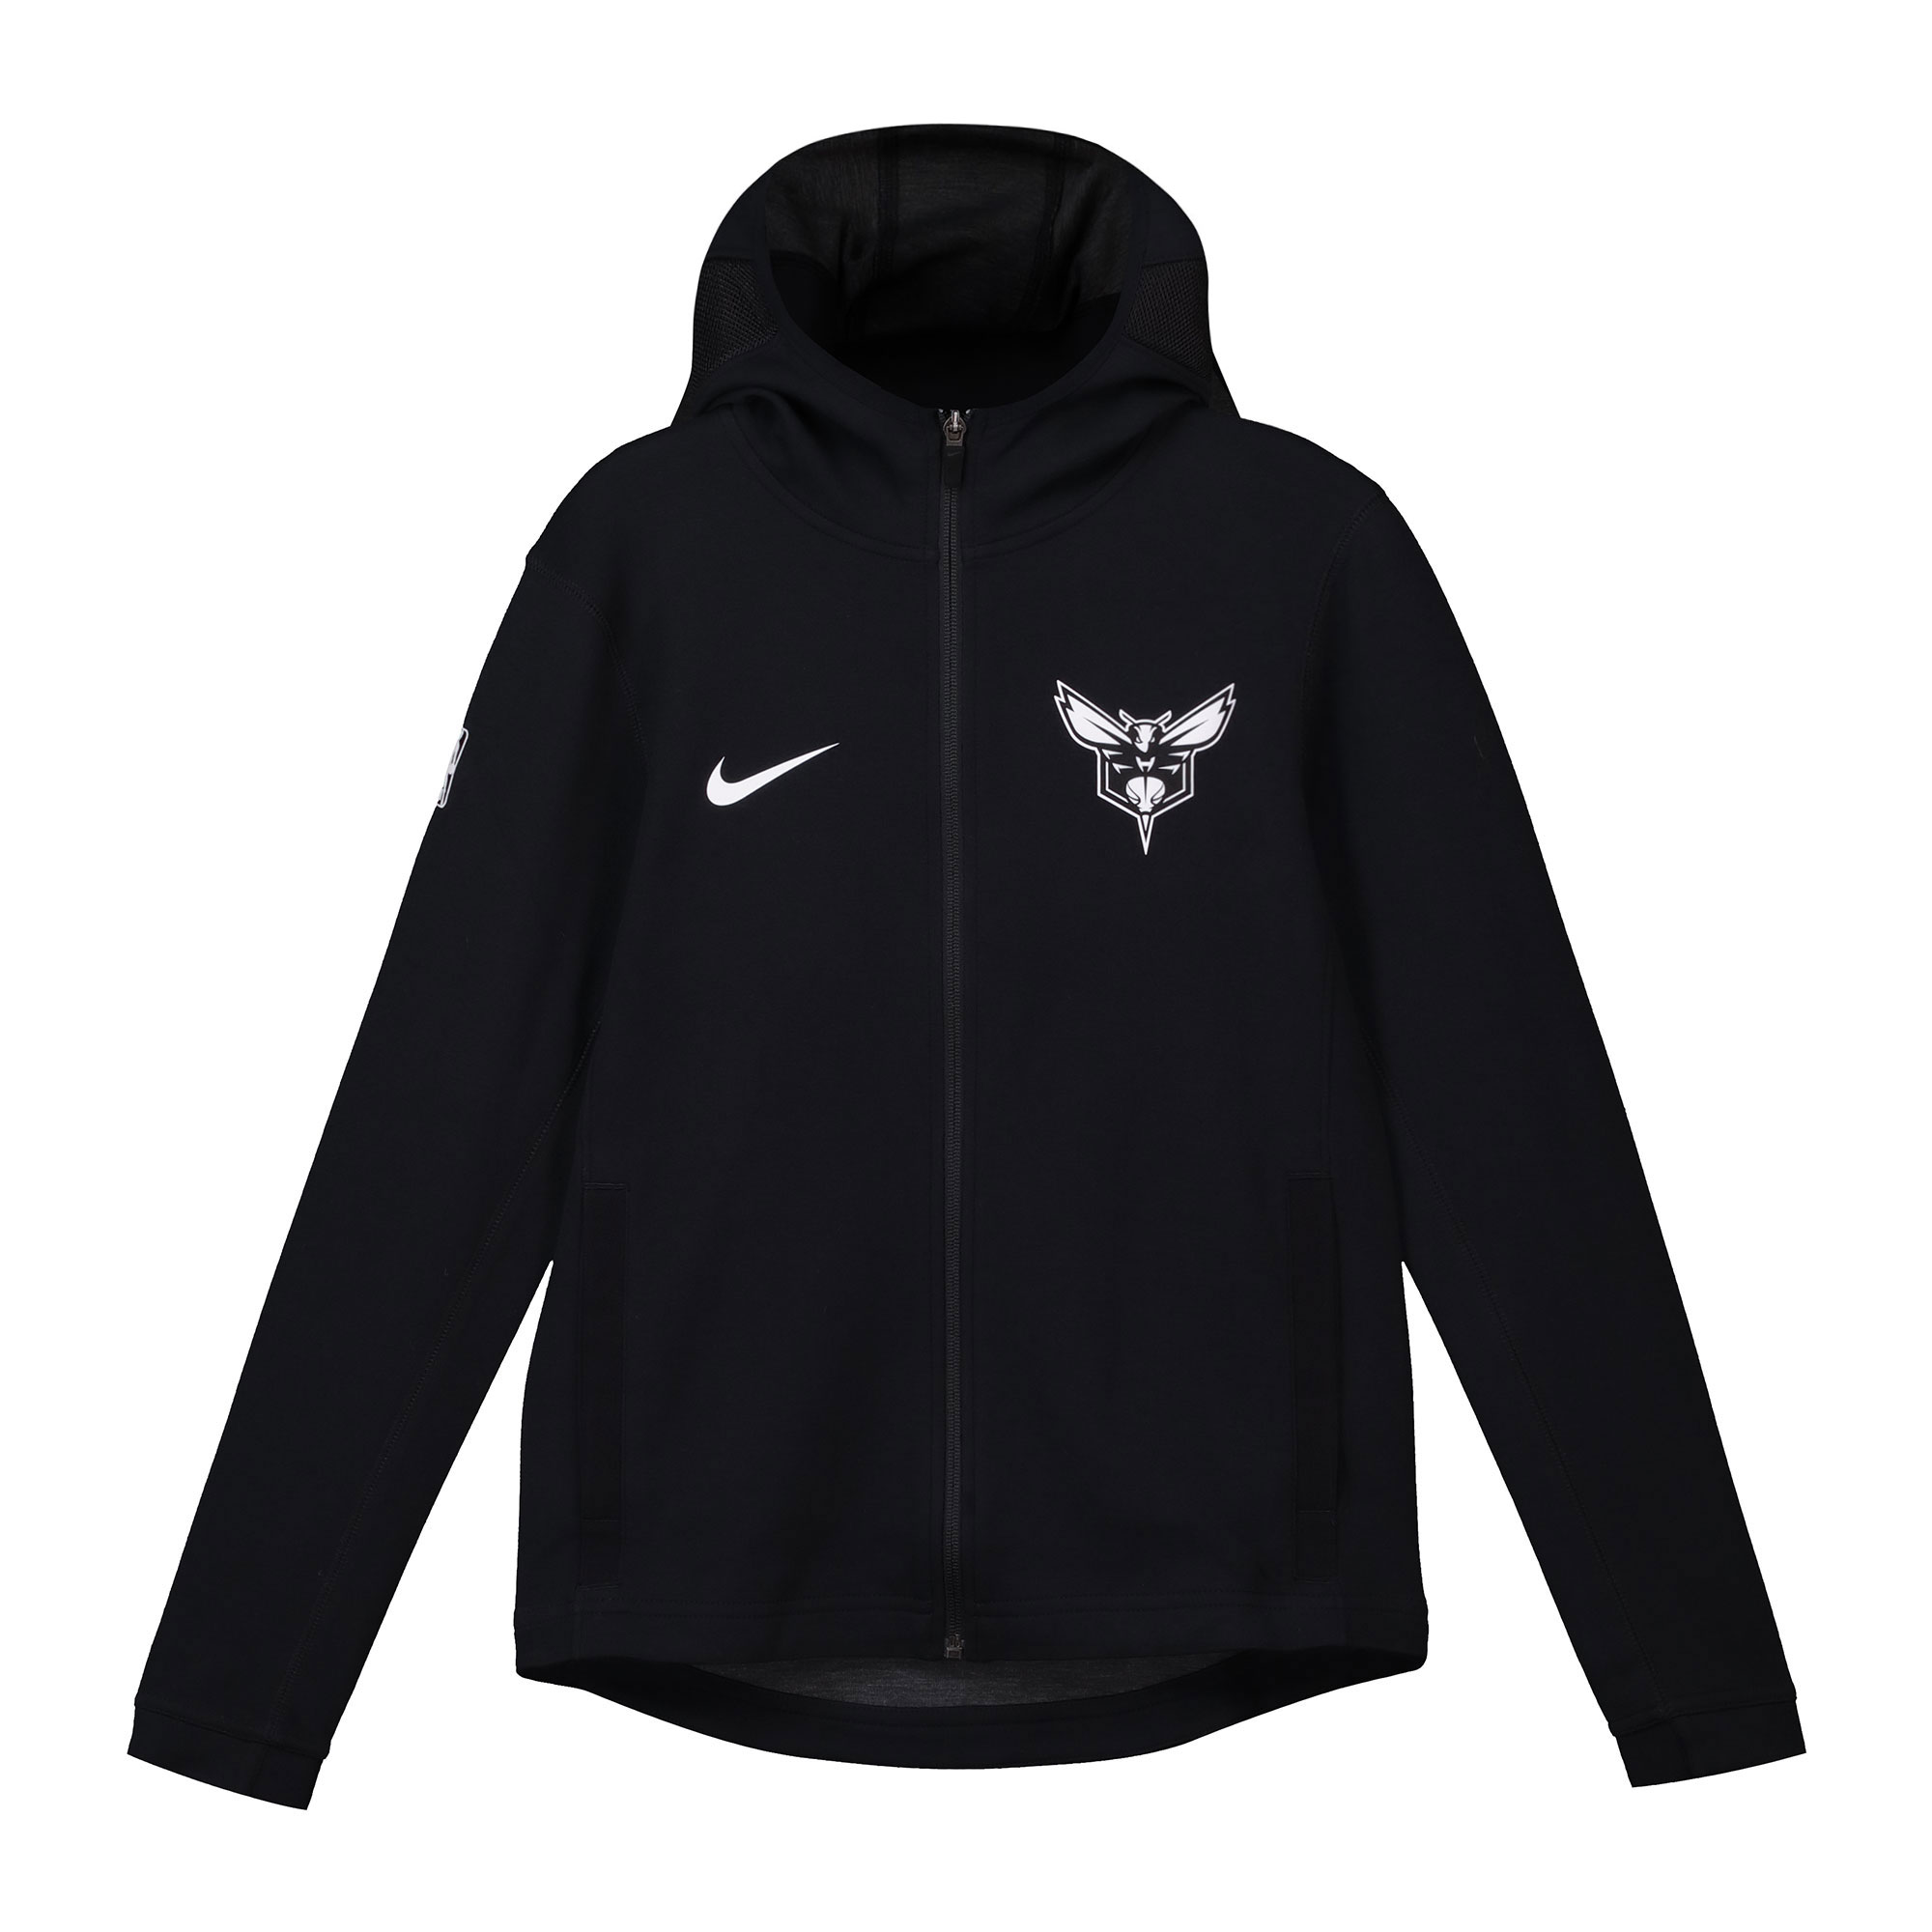 Club Branded / Charlotte Hornets Charlotte Hornets Nike Thermaflex Showtime Jacket - Youth